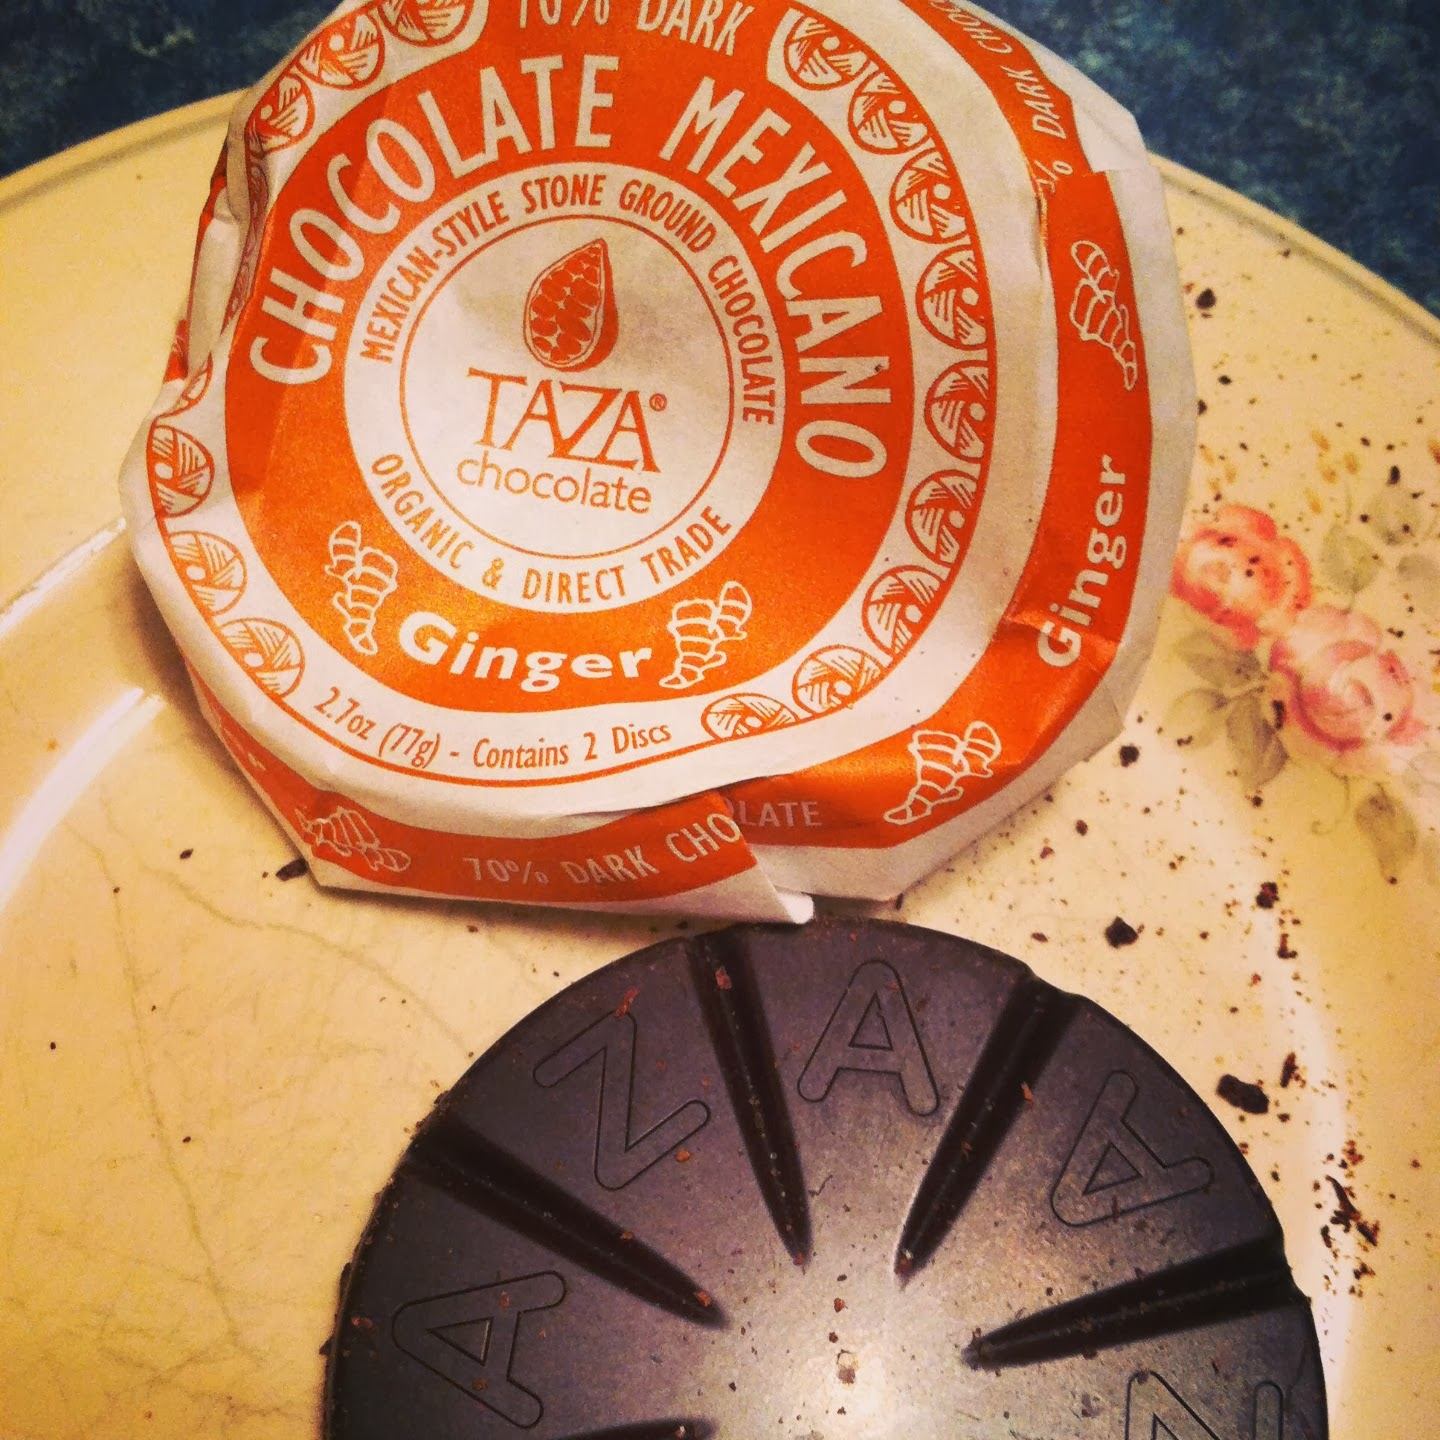 Taza Chocolate Mexicano with Ginger, another tasty one sampled in Cooking Chat post.